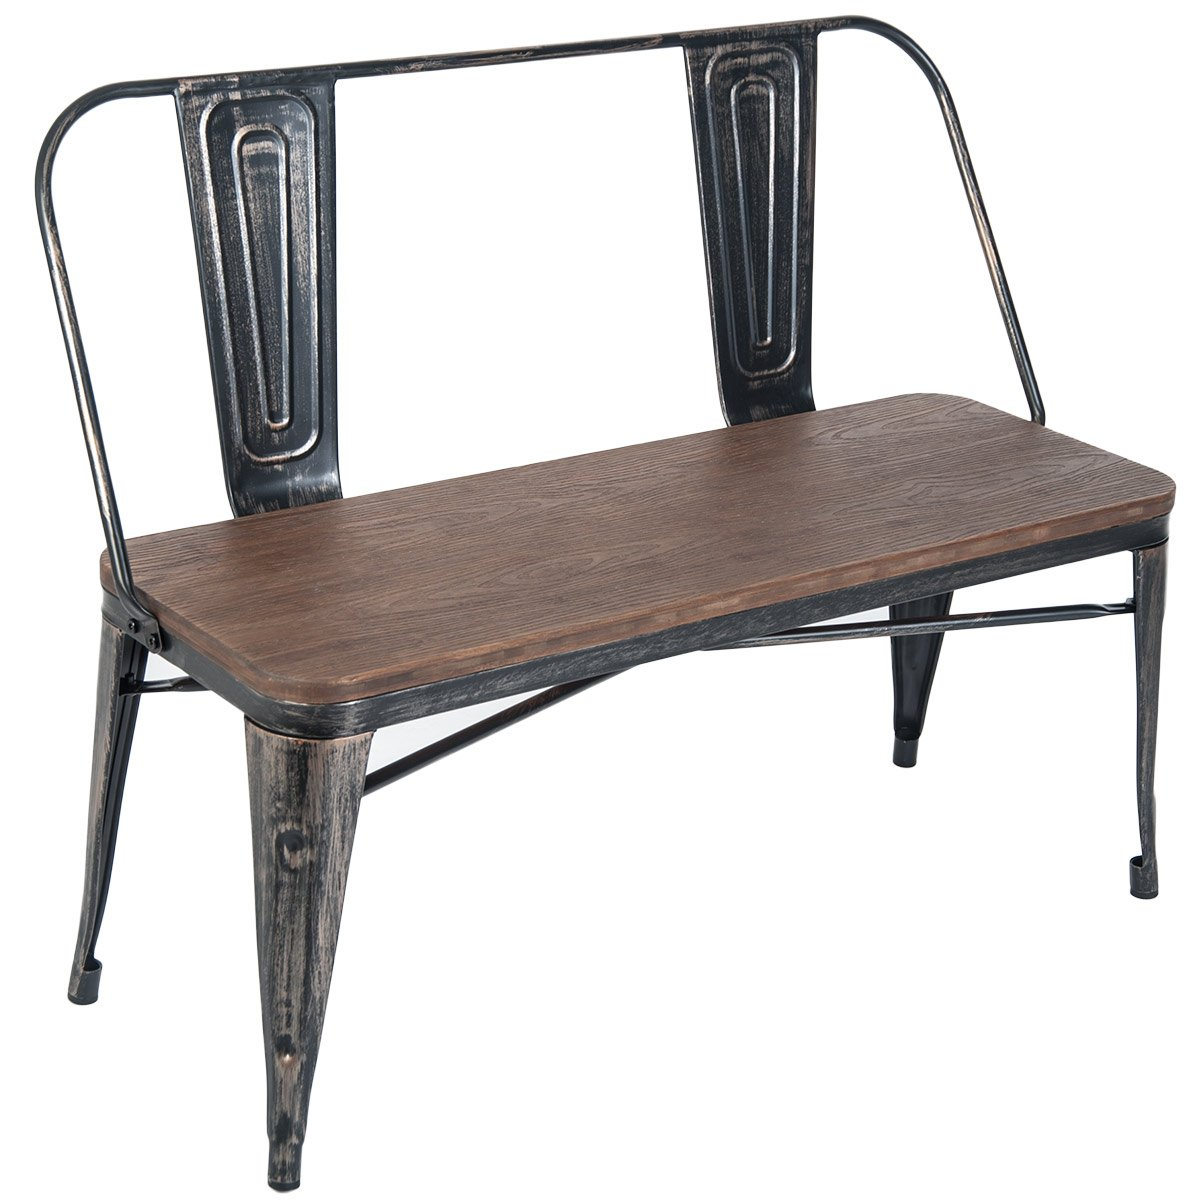 Merax Rustic Vintage Style Distressed Dining Table Bench with Wooden Seat Panel Metal Backrest and Metal Legs, Distressed Black by Merax